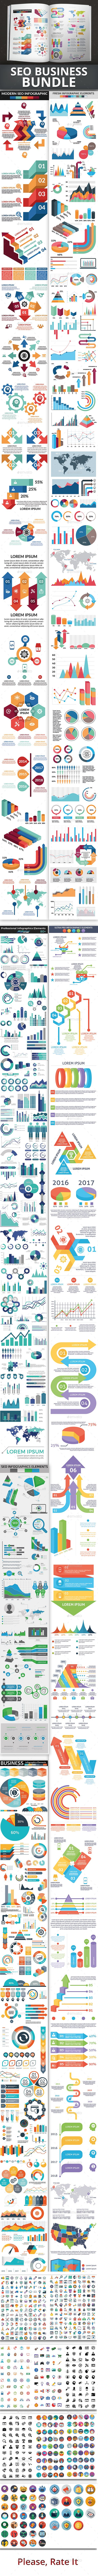 Seo Business Bundle Infographic Elements — Vector EPS #vector shapes #bar • Download ➝ https://graphicriver.net/item/seo-business-bundle-infographic-elements/21138317?ref=pxcr